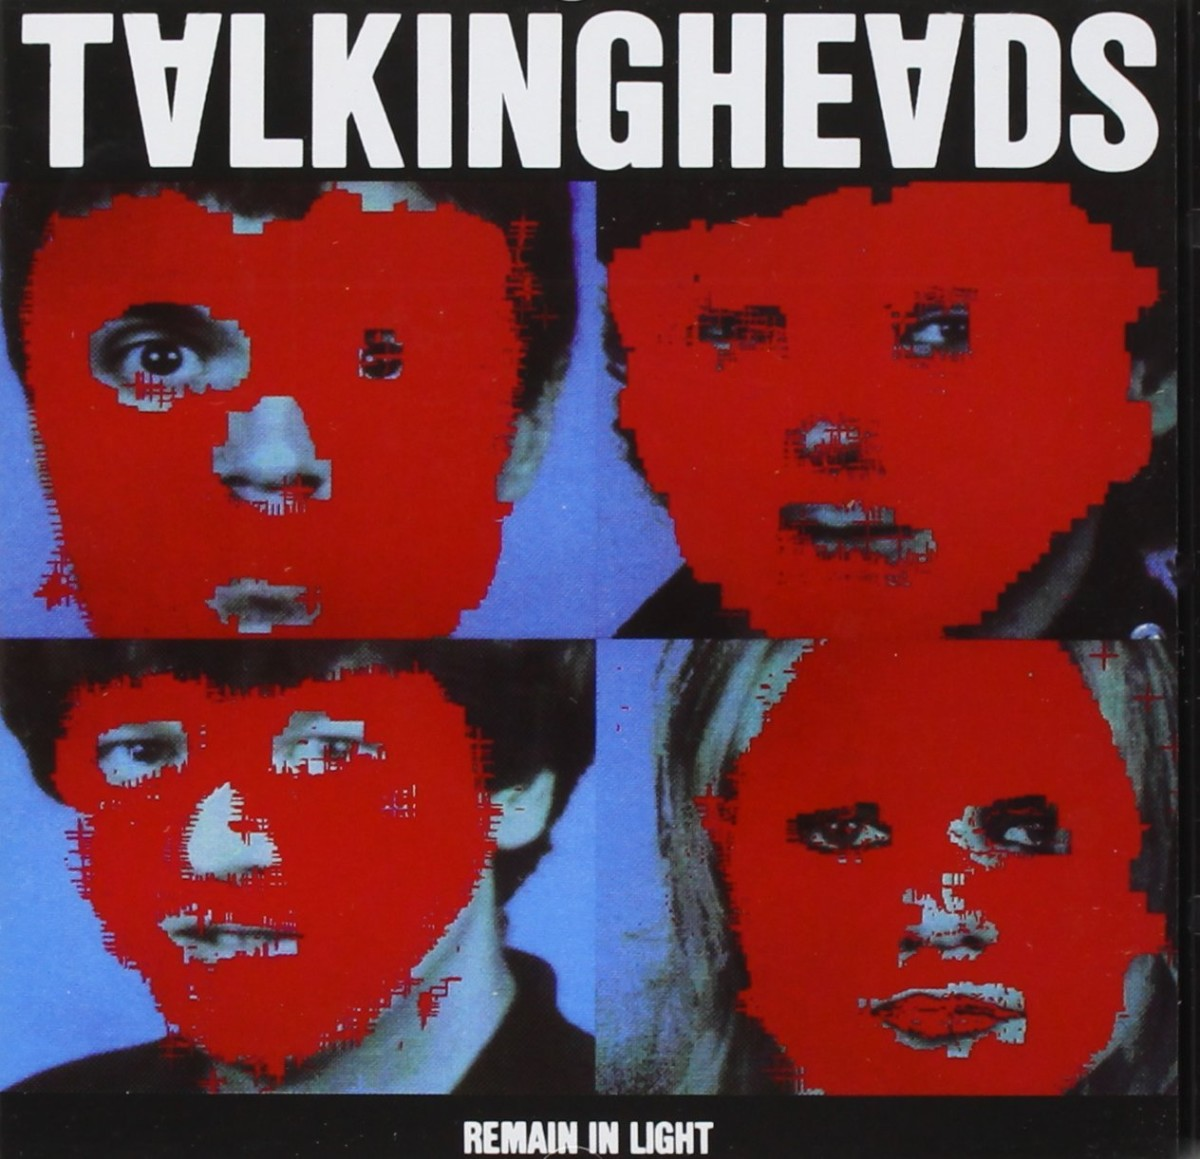 Talking Heads Remain in Light review